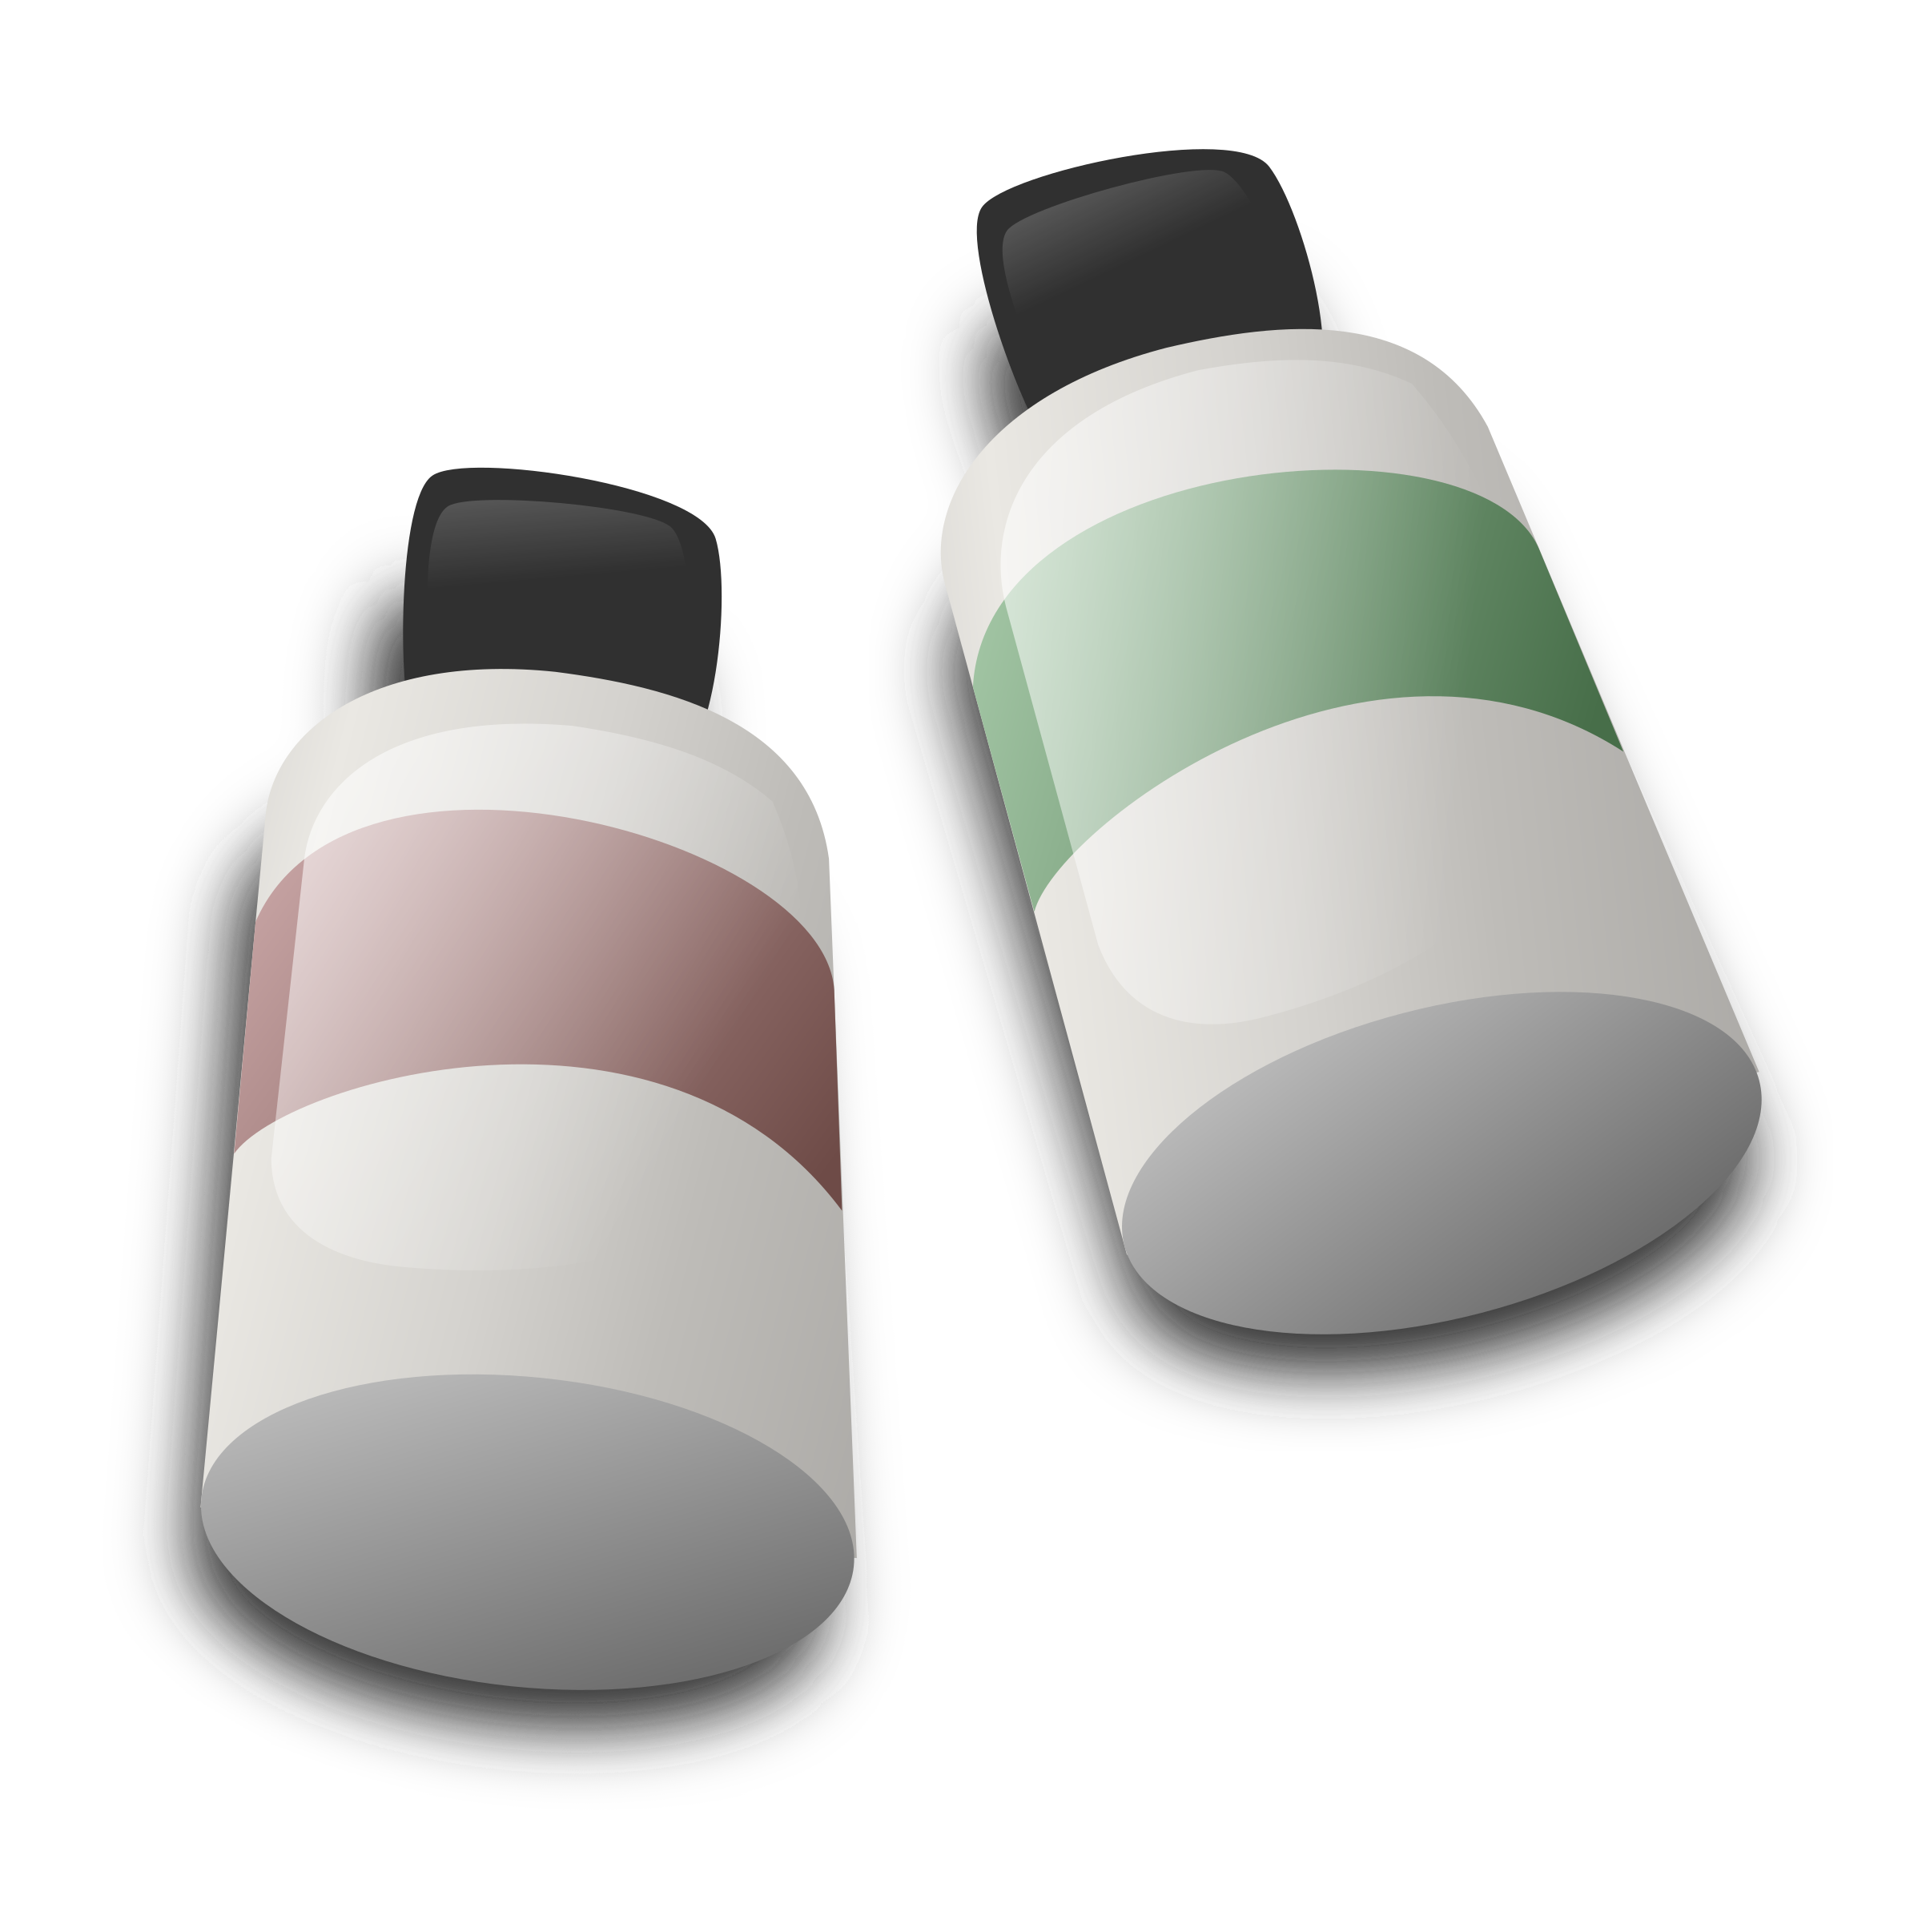 Bottles of dye ink by sarxos